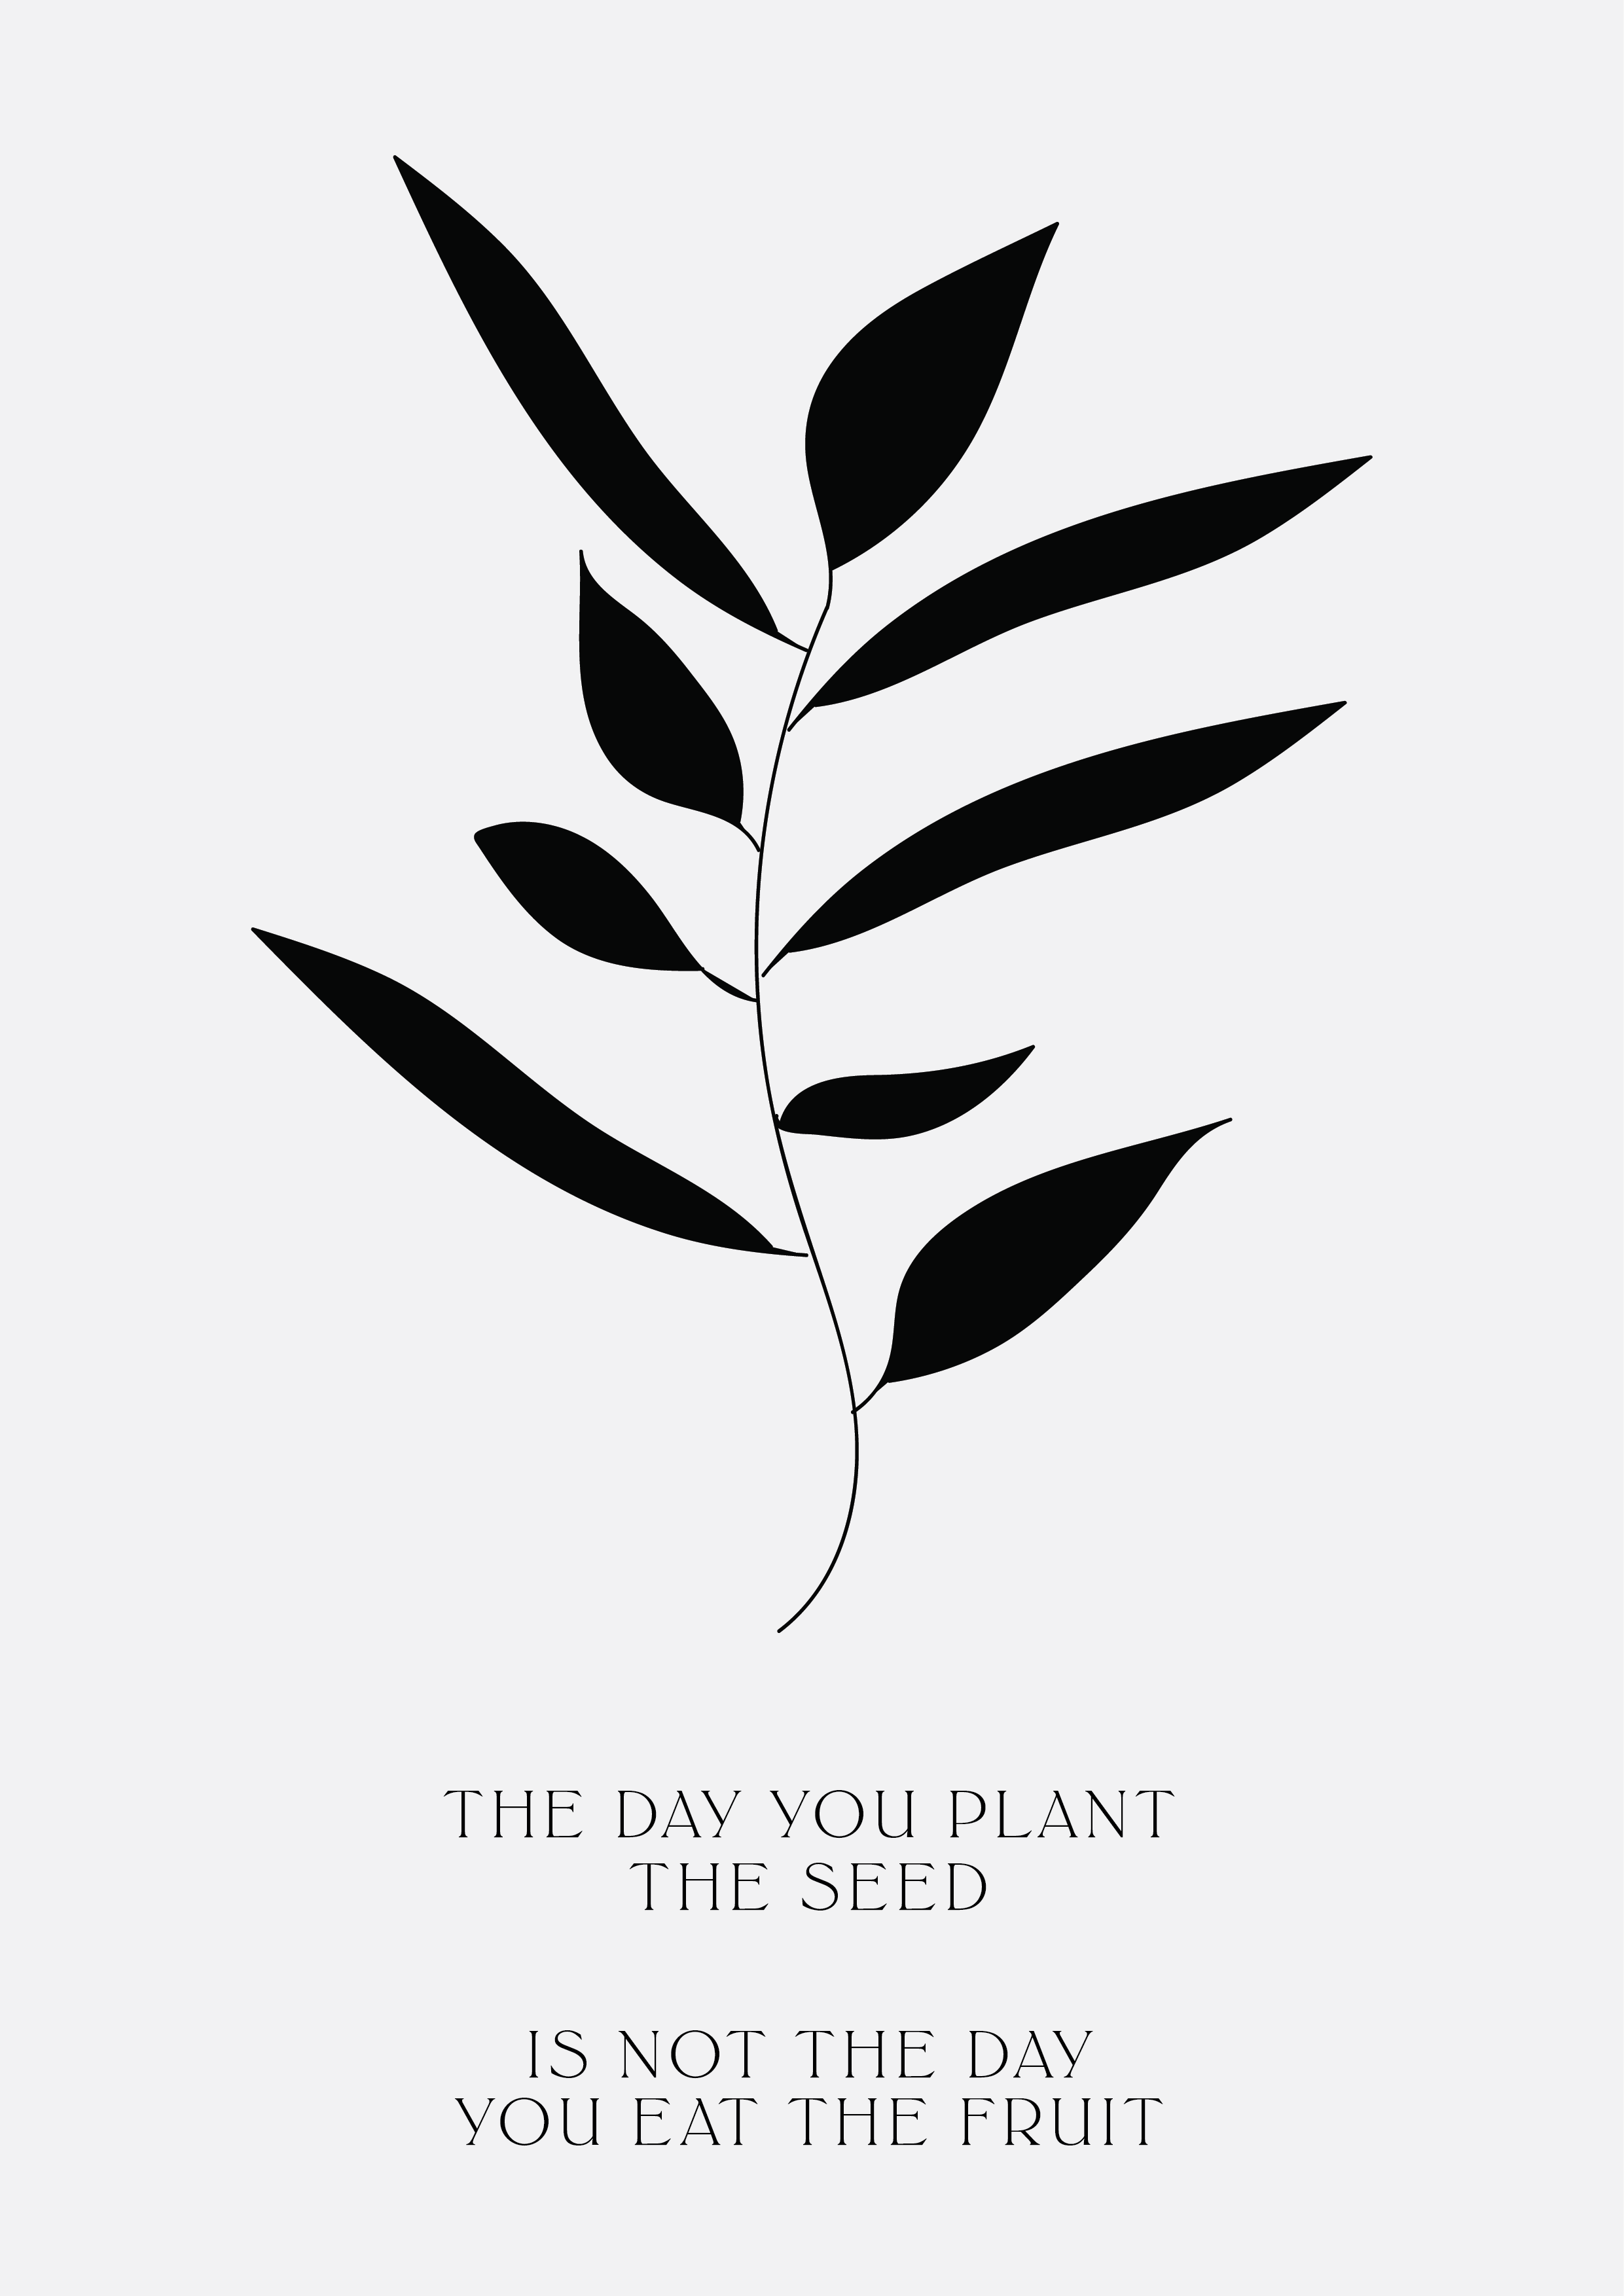 the day you plant the seed is not the day you eat the fruit // phylleli design studio, online-shop and self-care blog #illustration #typography #patienceisavirtue #designblog #selfdevelopment #goalsetting #selfcareblog #typography #botanicals #botanicaldesign #minimal #minimalism